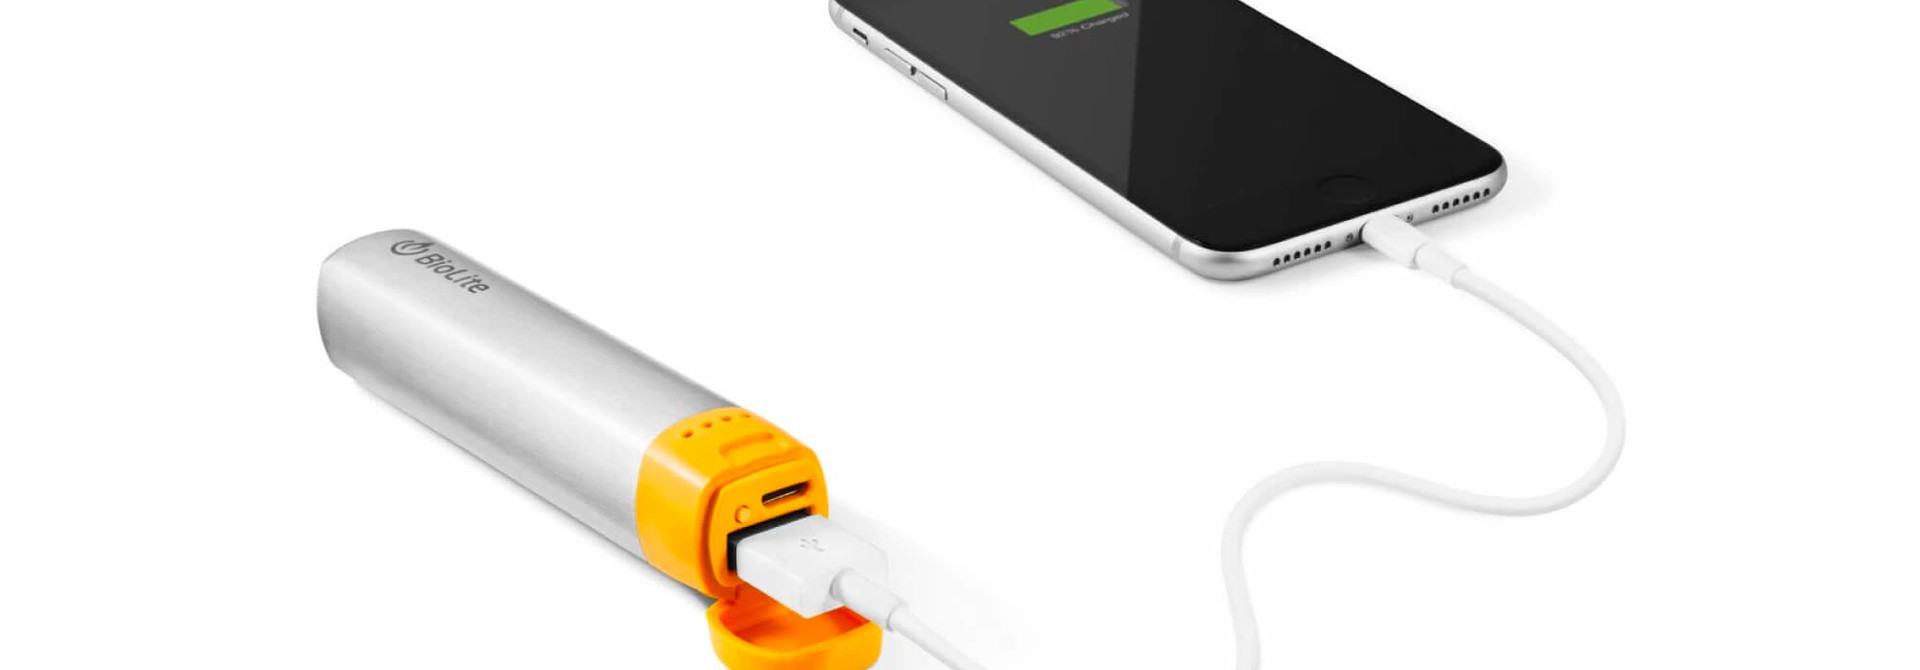 BioLite Charge USB Power Pack